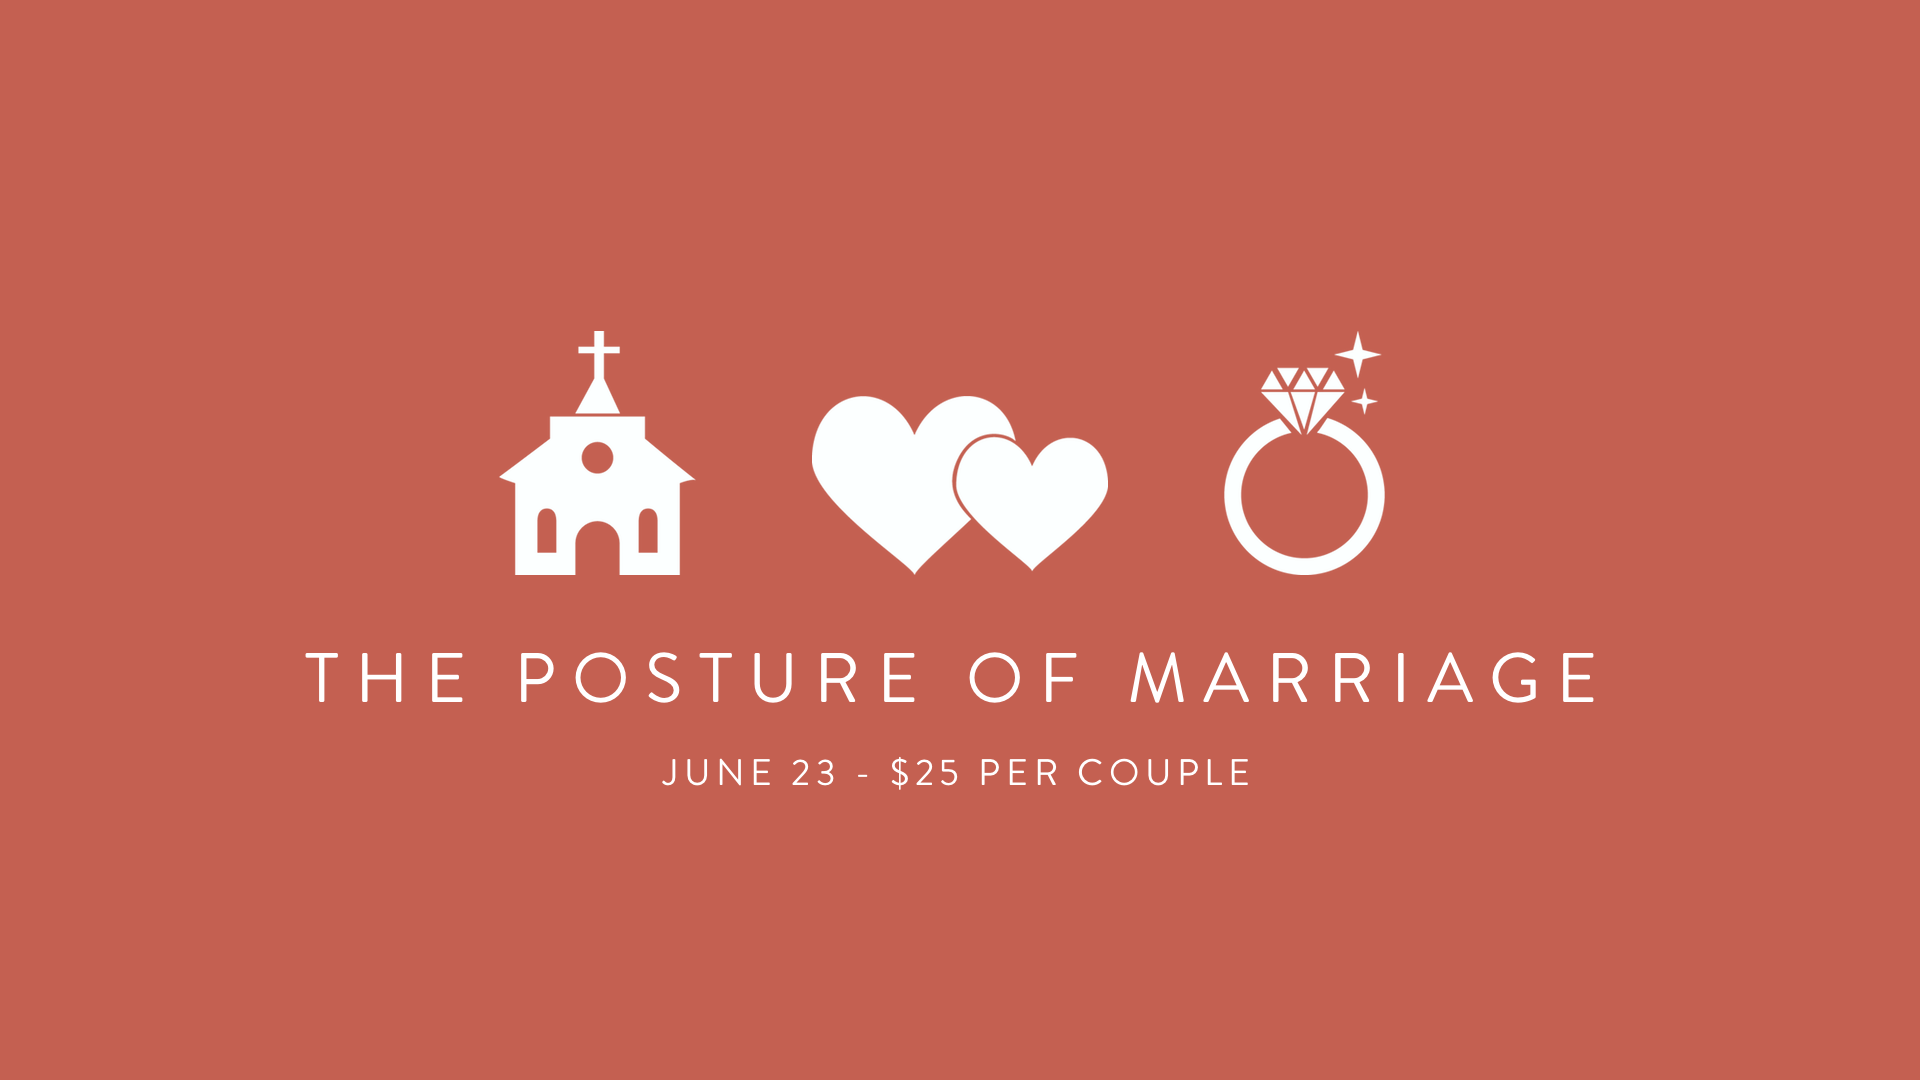 Postureofmarriage rectangle